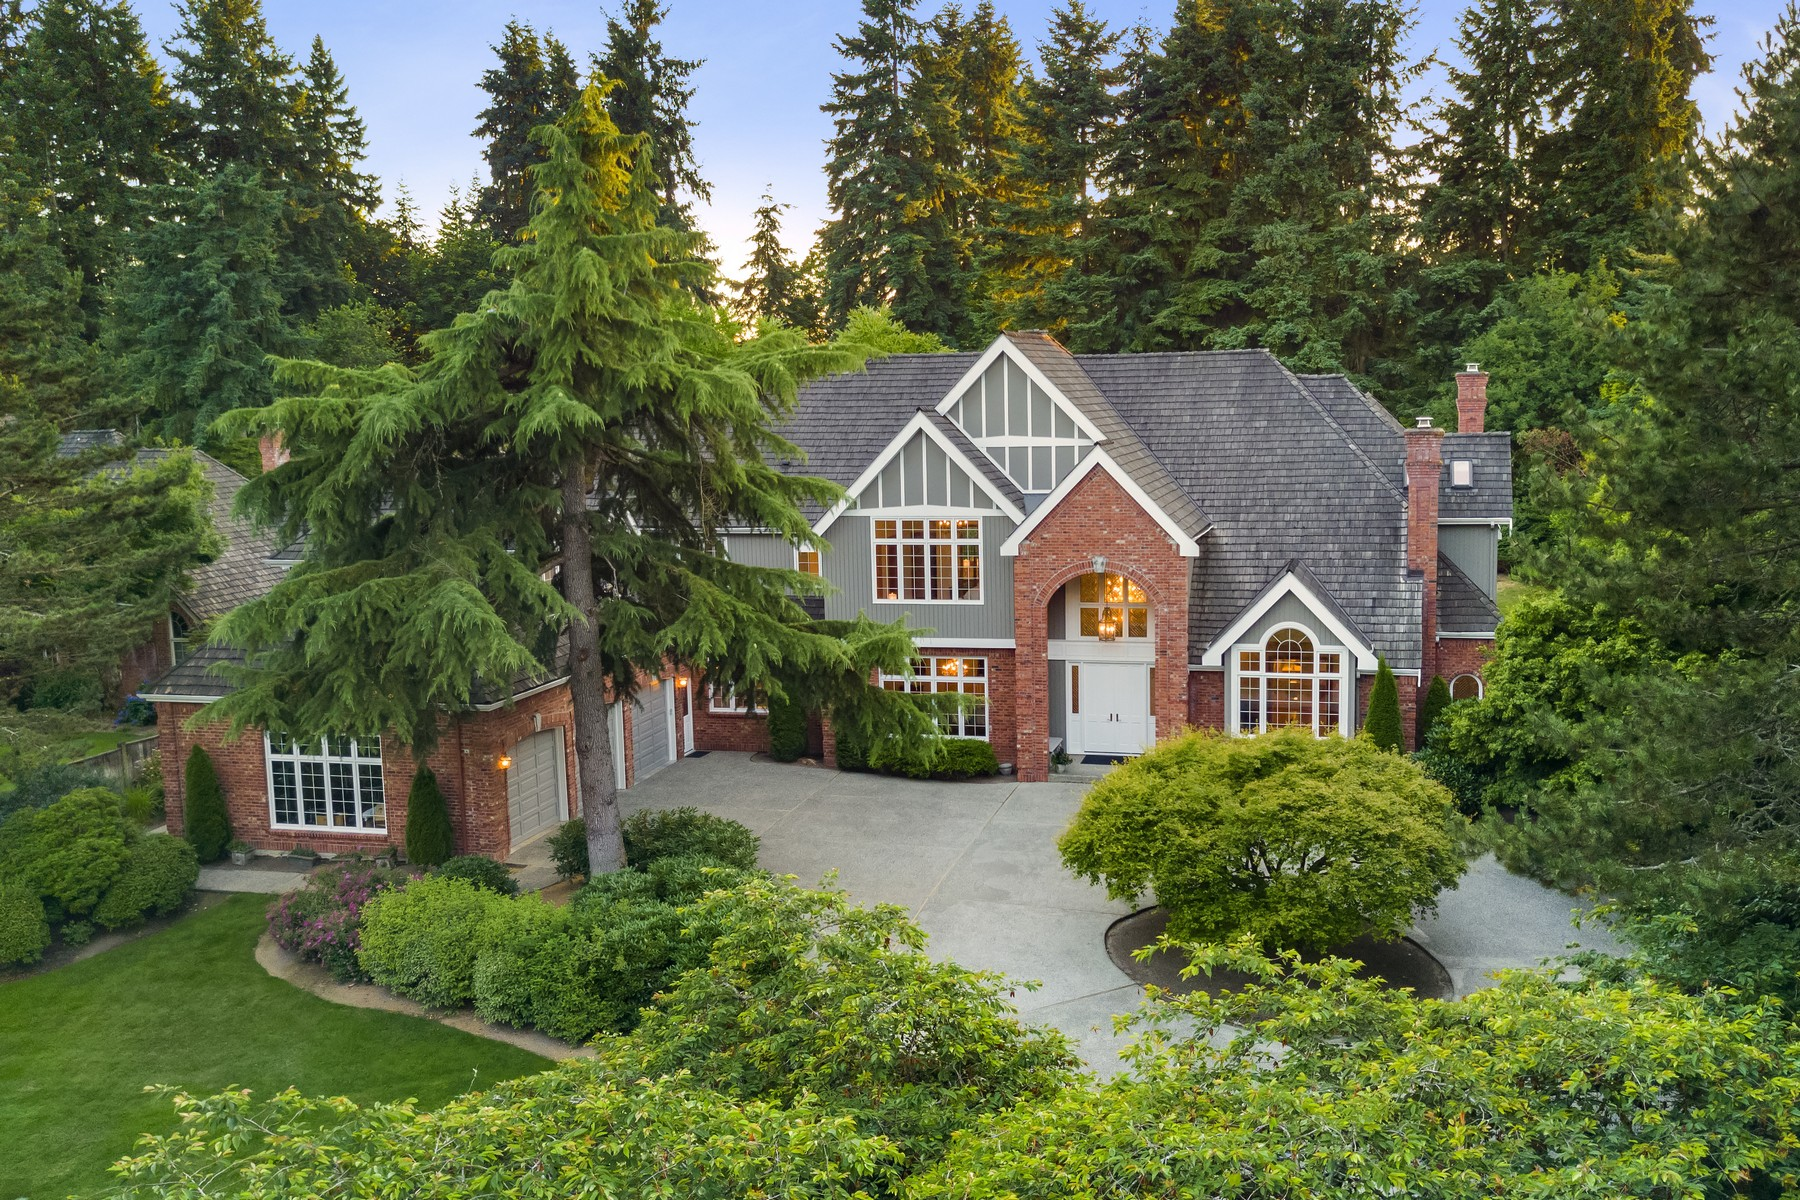 Maison unifamiliale pour l Vente à Architecturally Distinct Hollywood Hills Estate 15430 NE 152nd Place Woodinville, Washington 98072 États-Unis